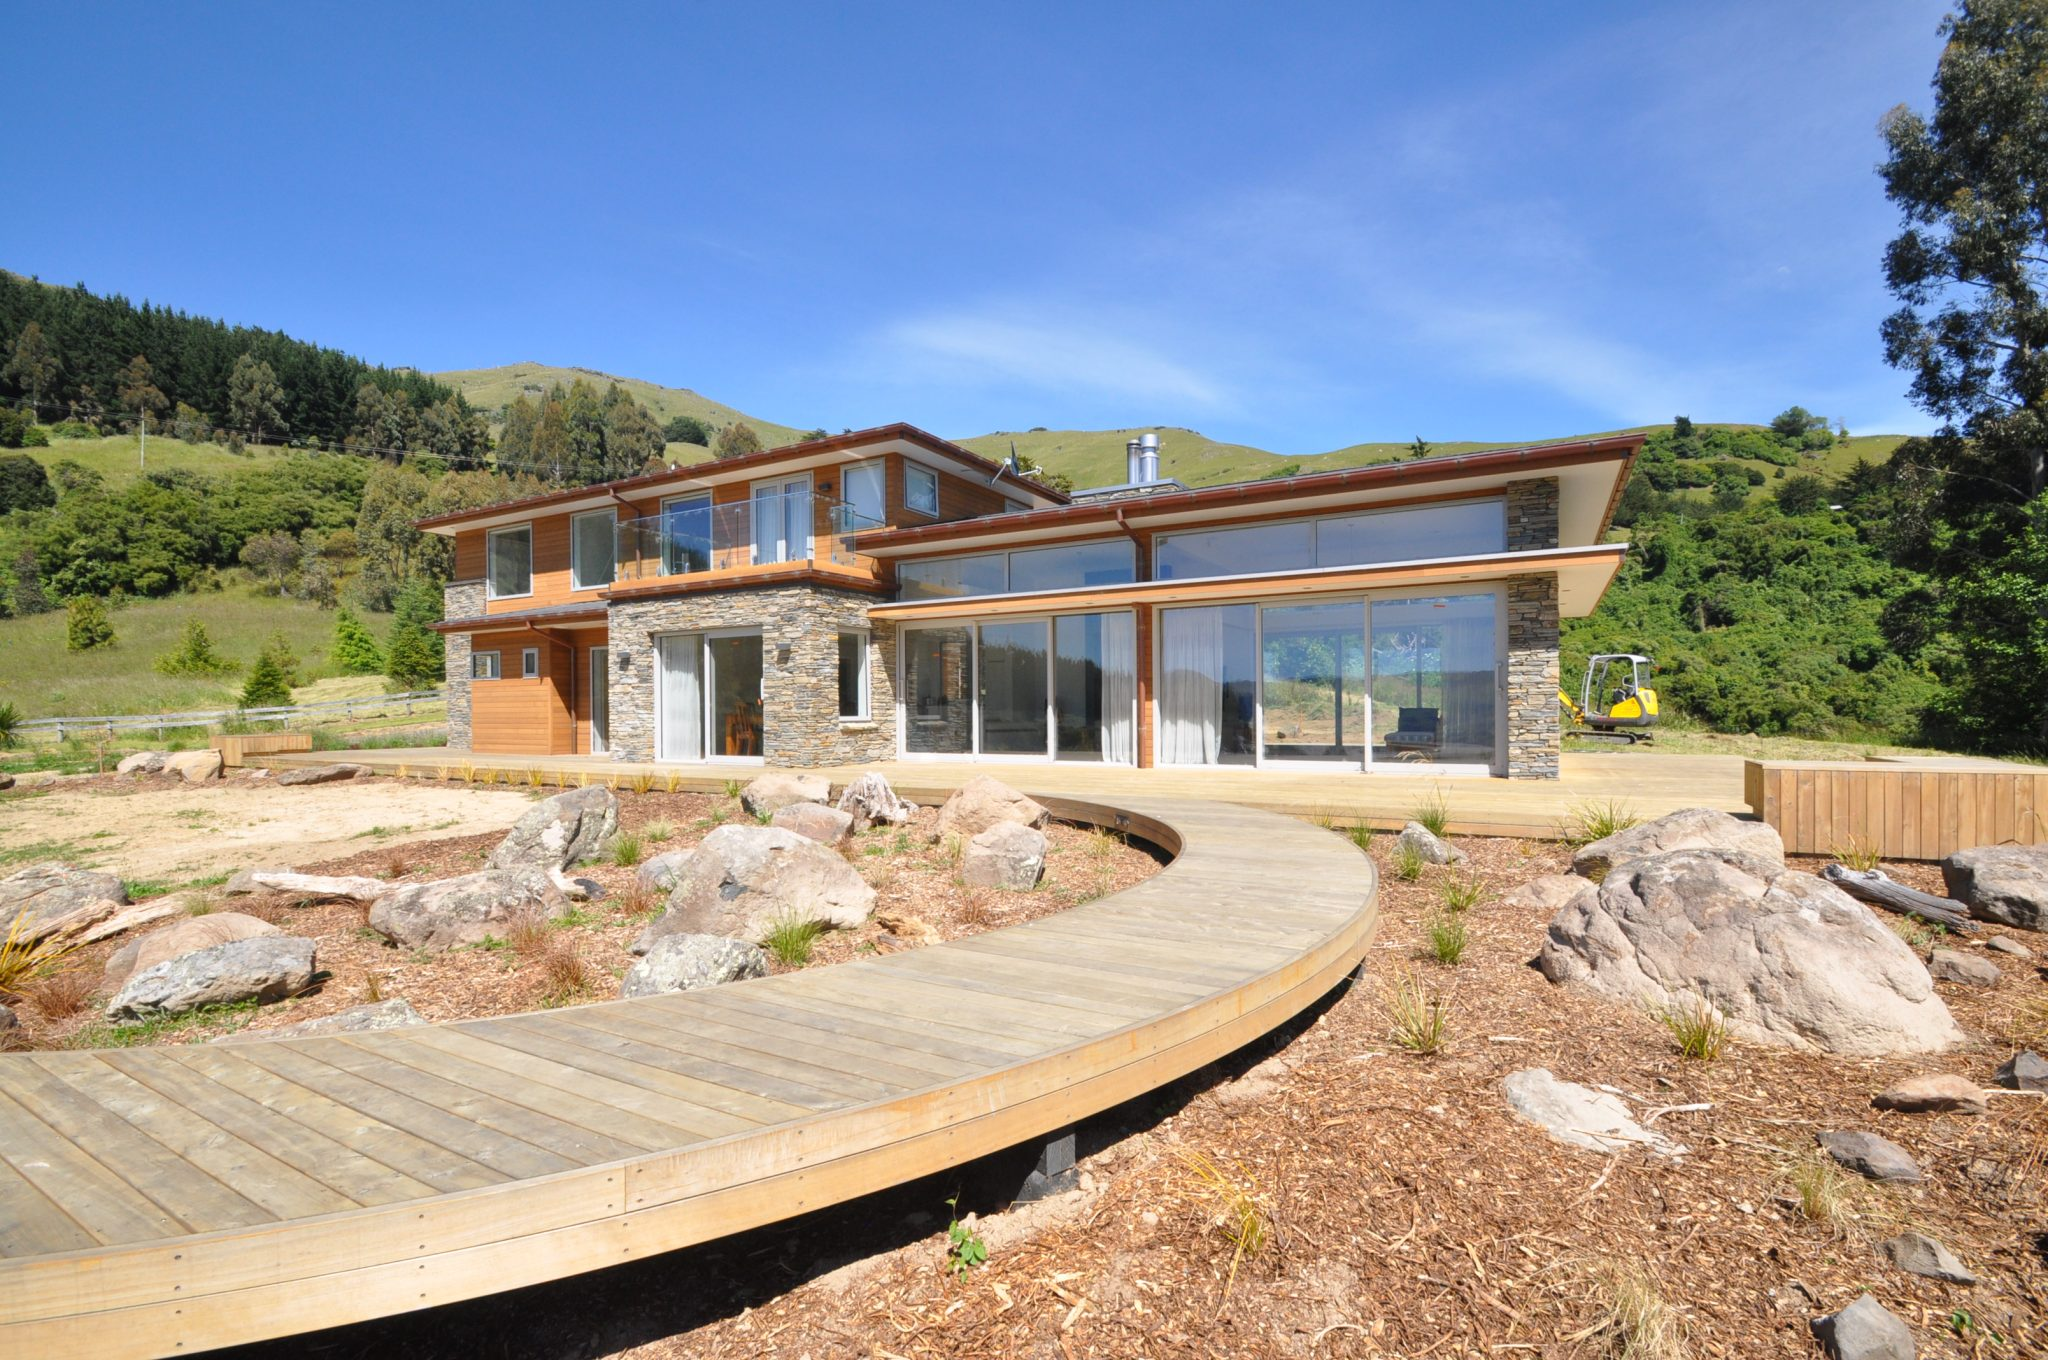 Where eco-friendly function meets award winning architectural form